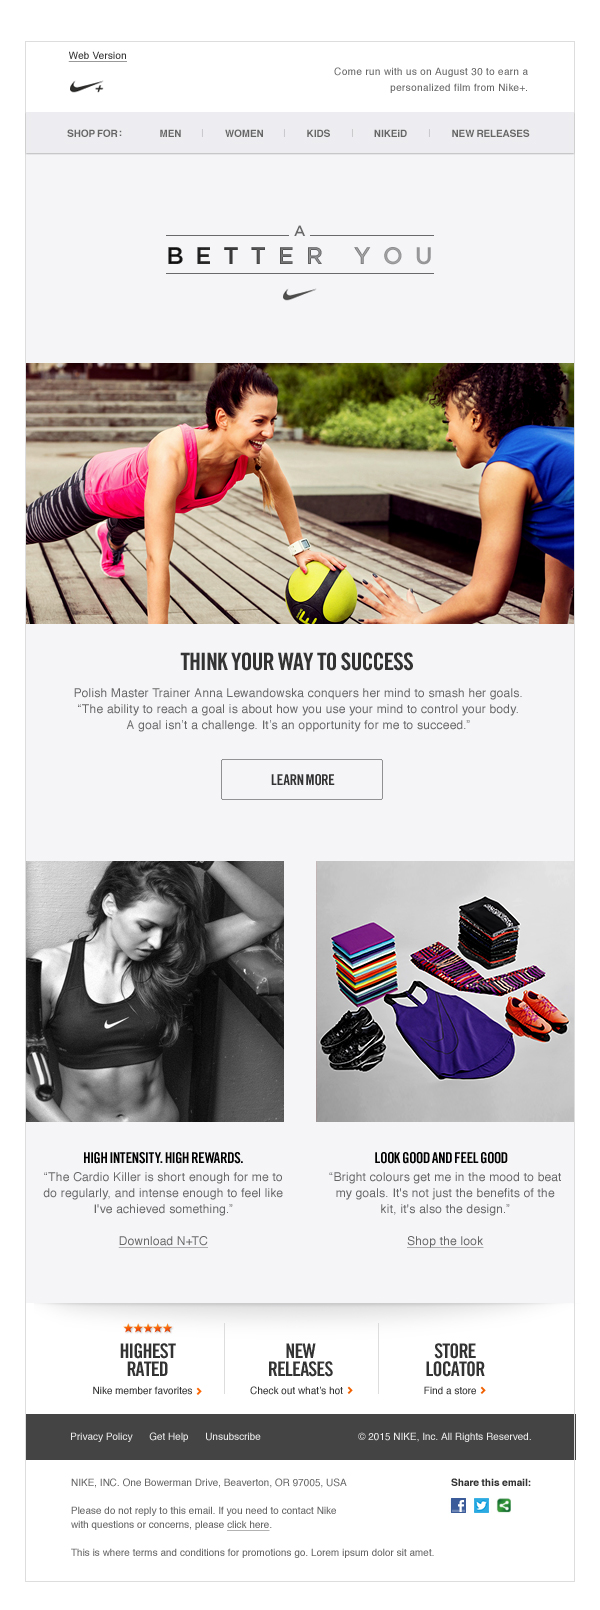 Nike_Women_RESOLUTIONS_EDITORIAL_EMAIL_003.jpg